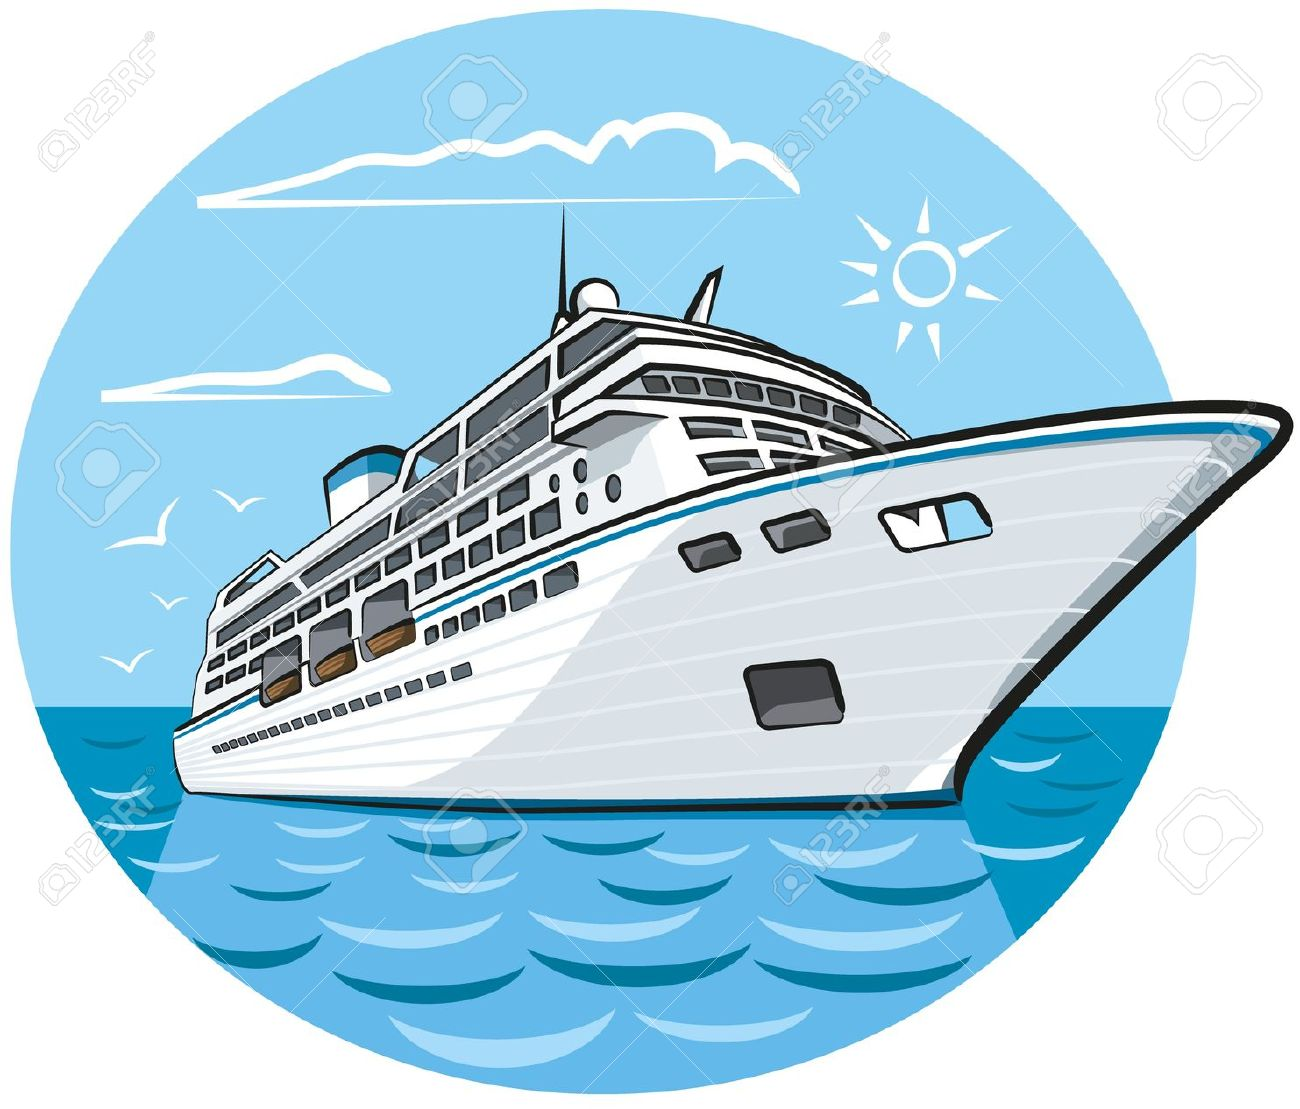 Luxury Cruise Ship Royalty Free Cliparts, Vectors, And Stock.